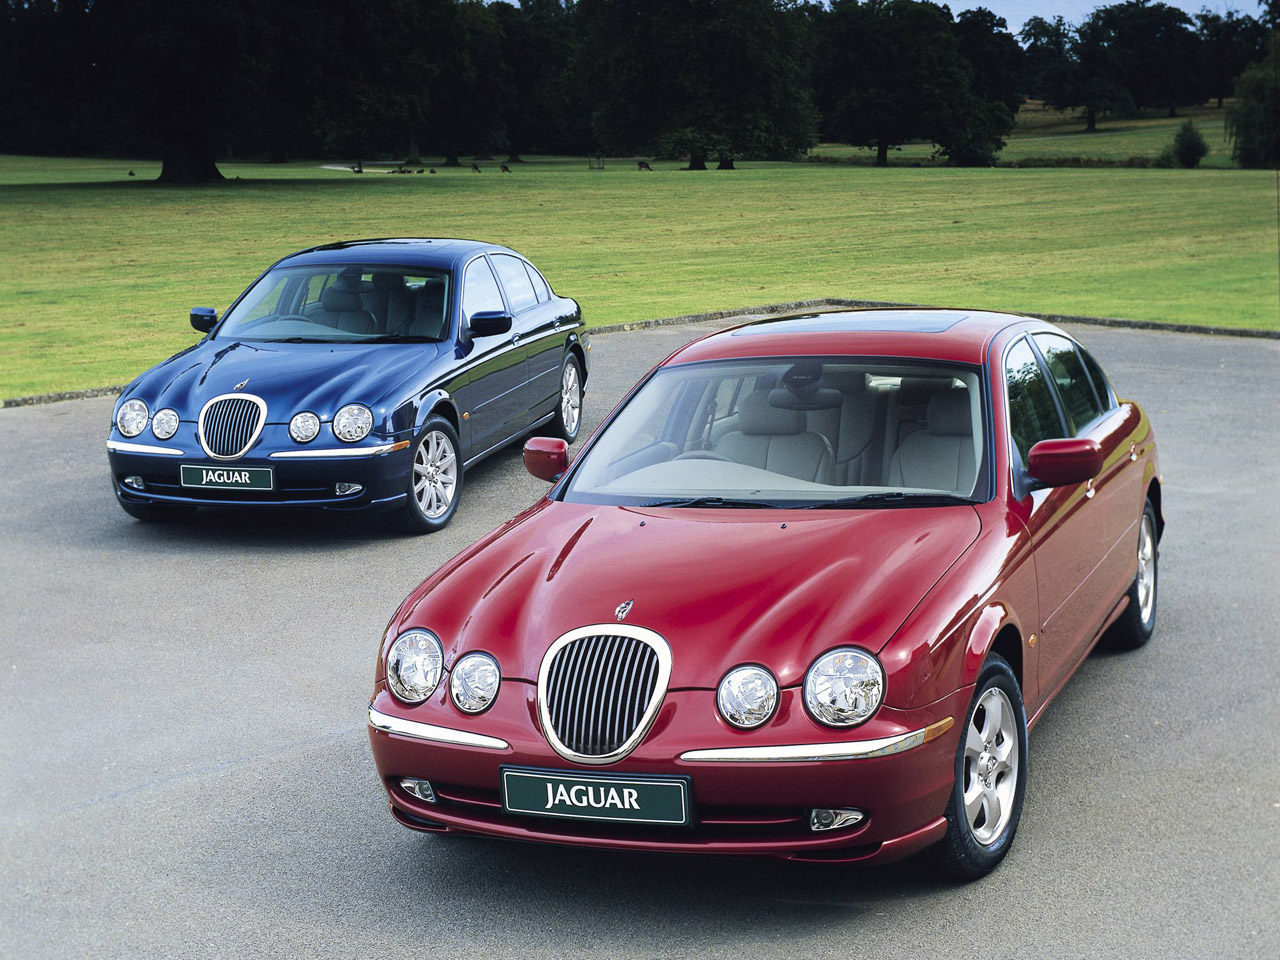 2000 Jaguar S-TYPE. CN-331035-111